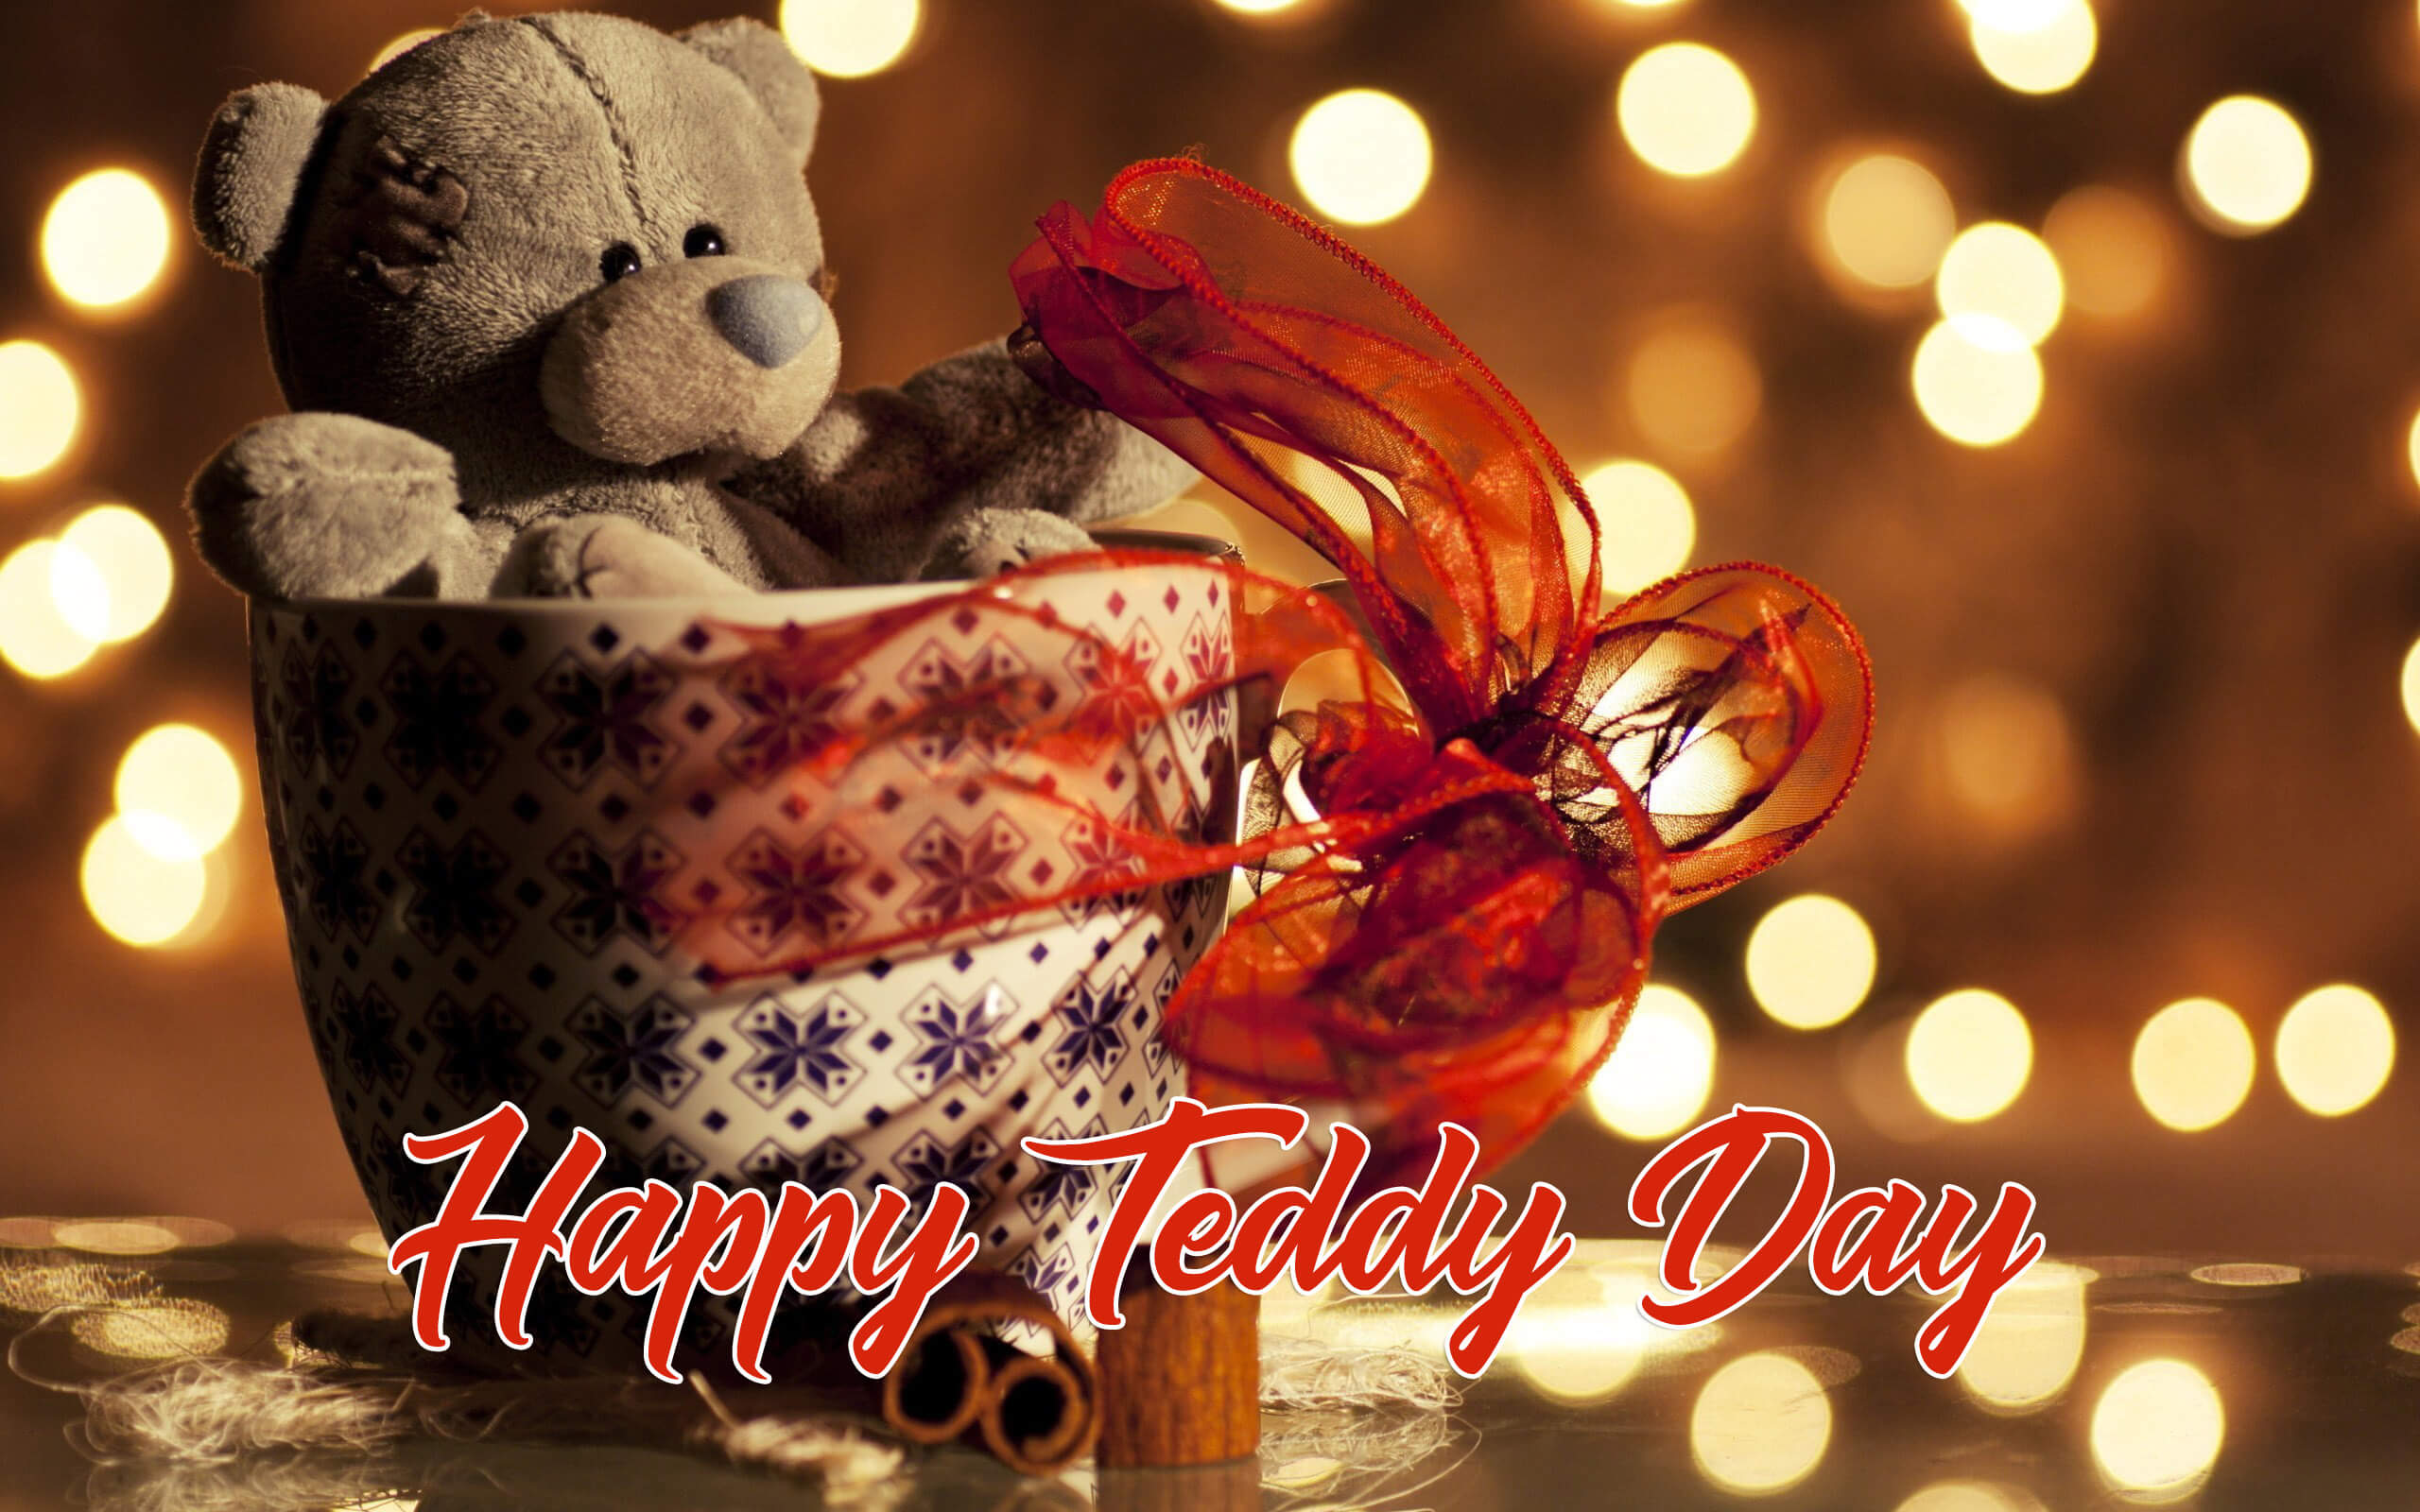 happy teddy day bear in cup valentine graphic large background hd wallpaper